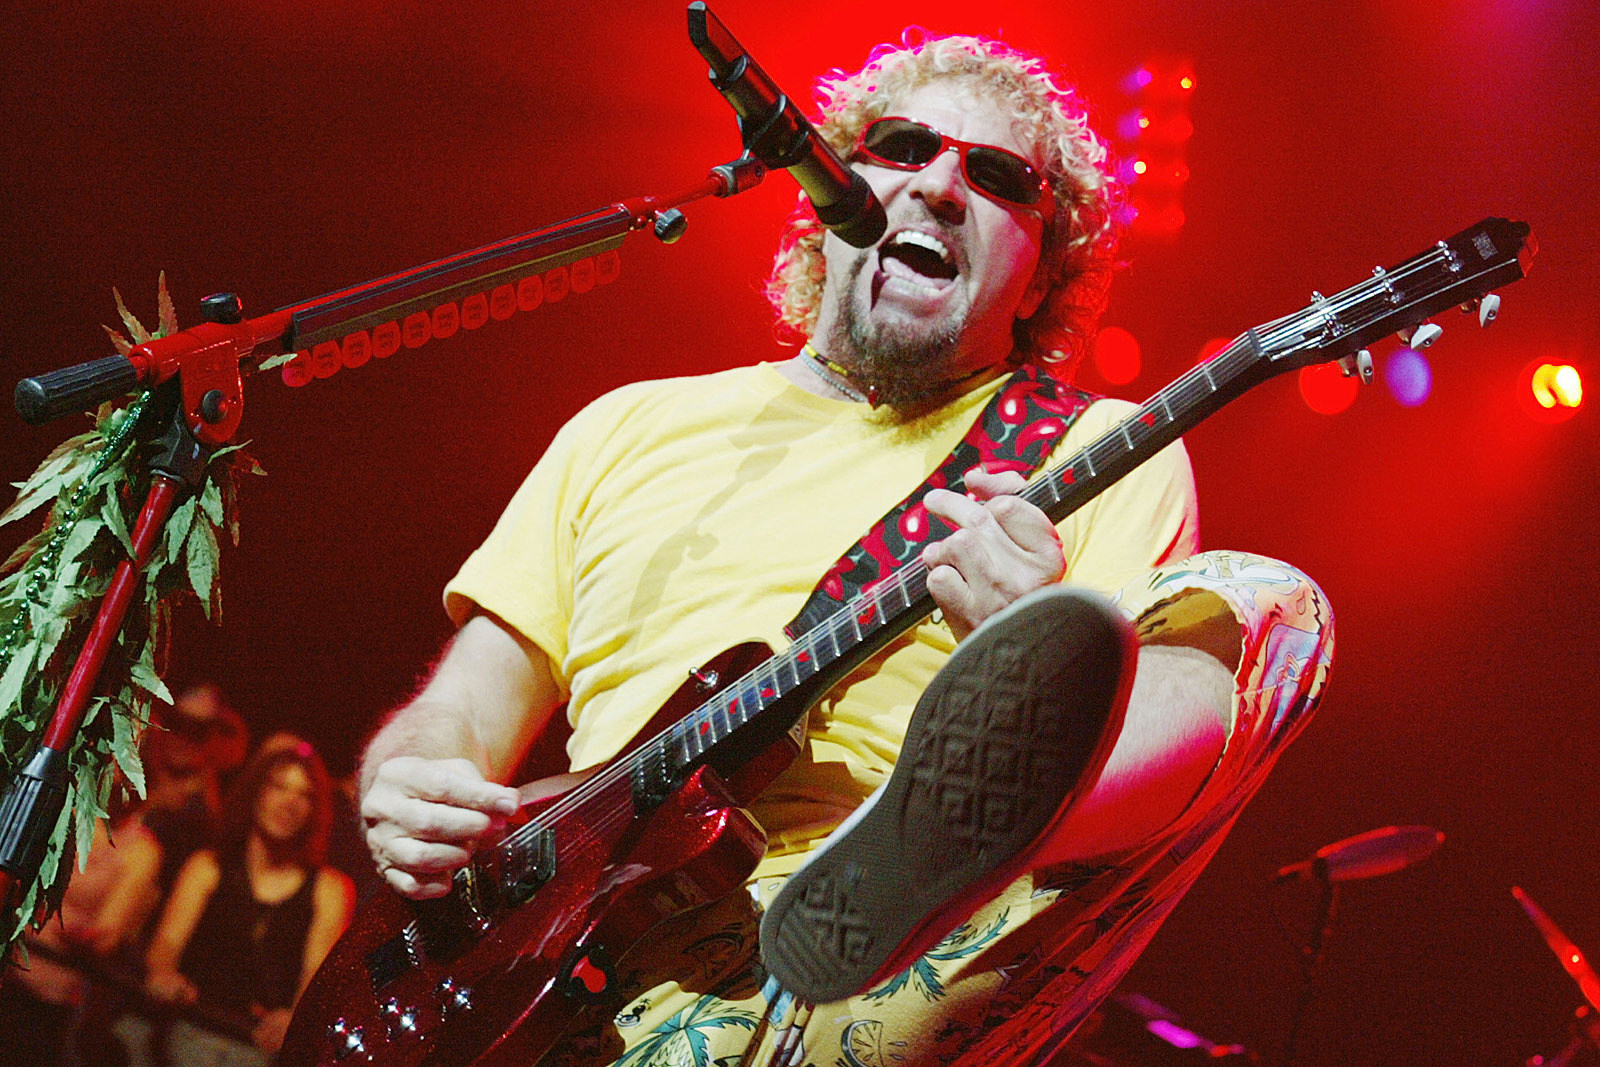 Sammy Hagar Says He 'Inherited' His Van Halen Era Songs